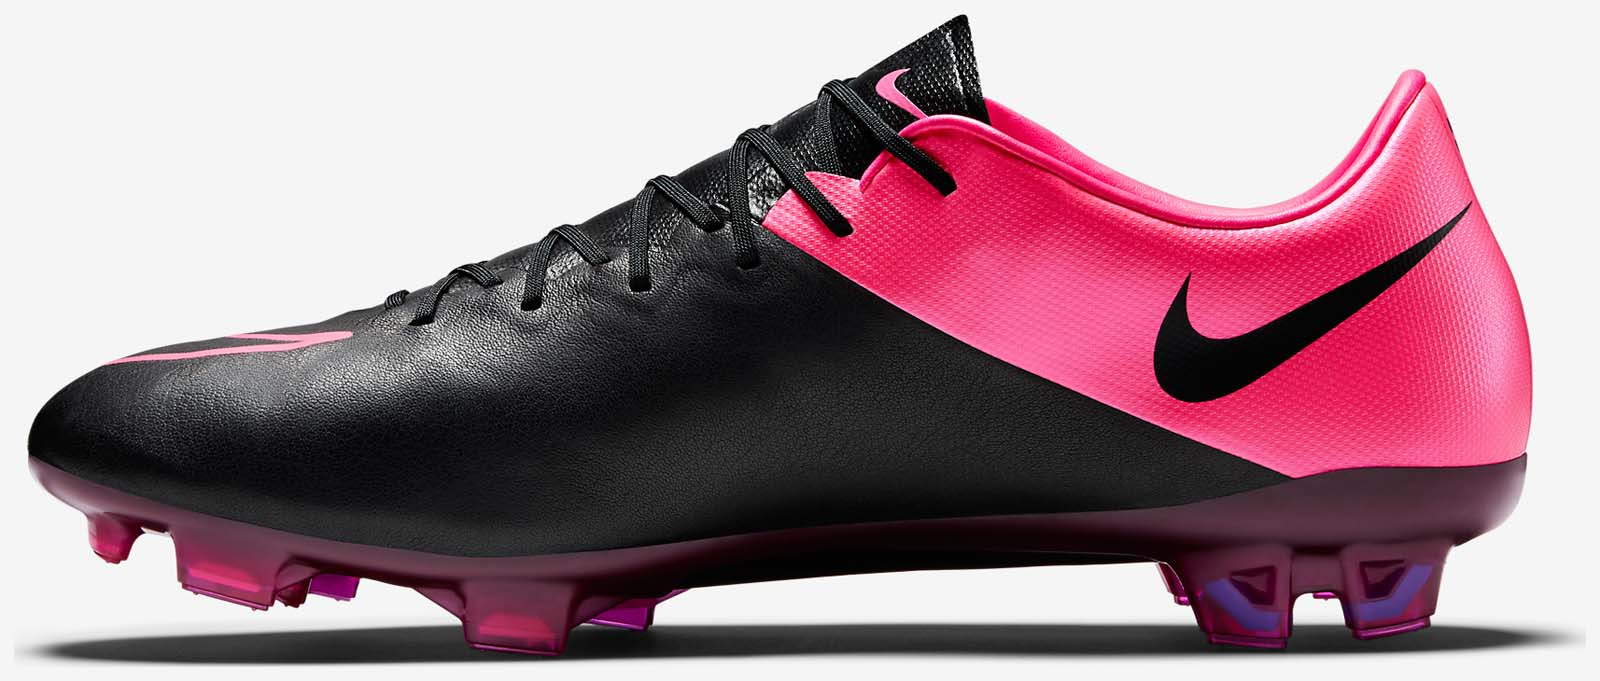 270f625f5414 ... ireland nike mercurial vapor x leather boots released 330fa 62a0c